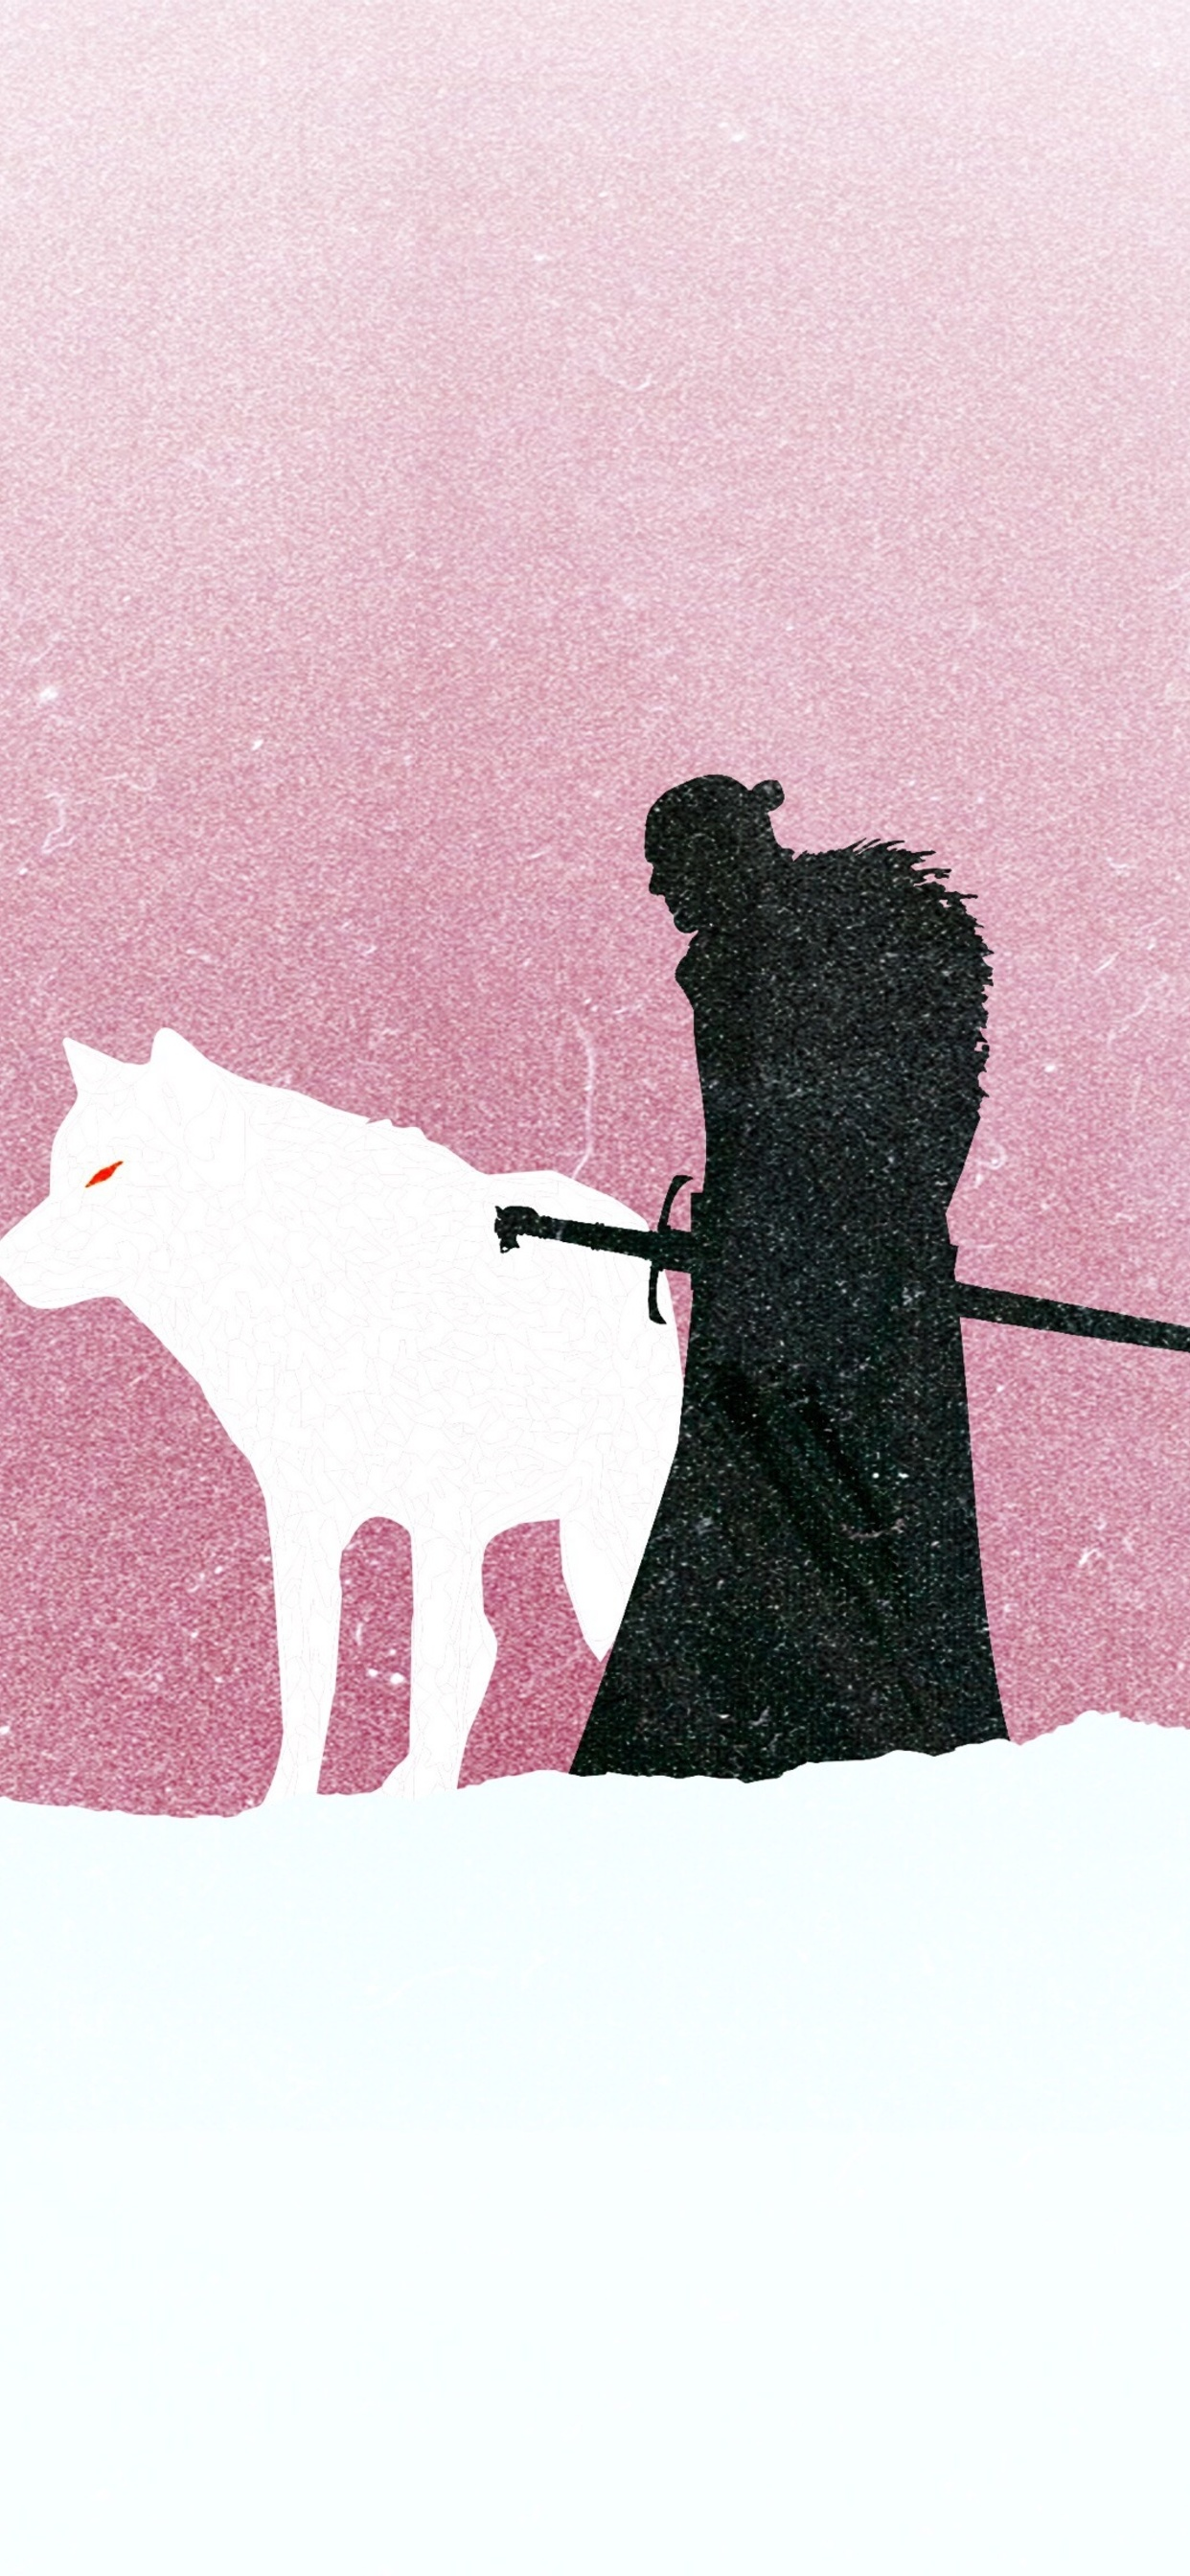 jon-snow-game-of-thrones-minimalism-b1.jpg